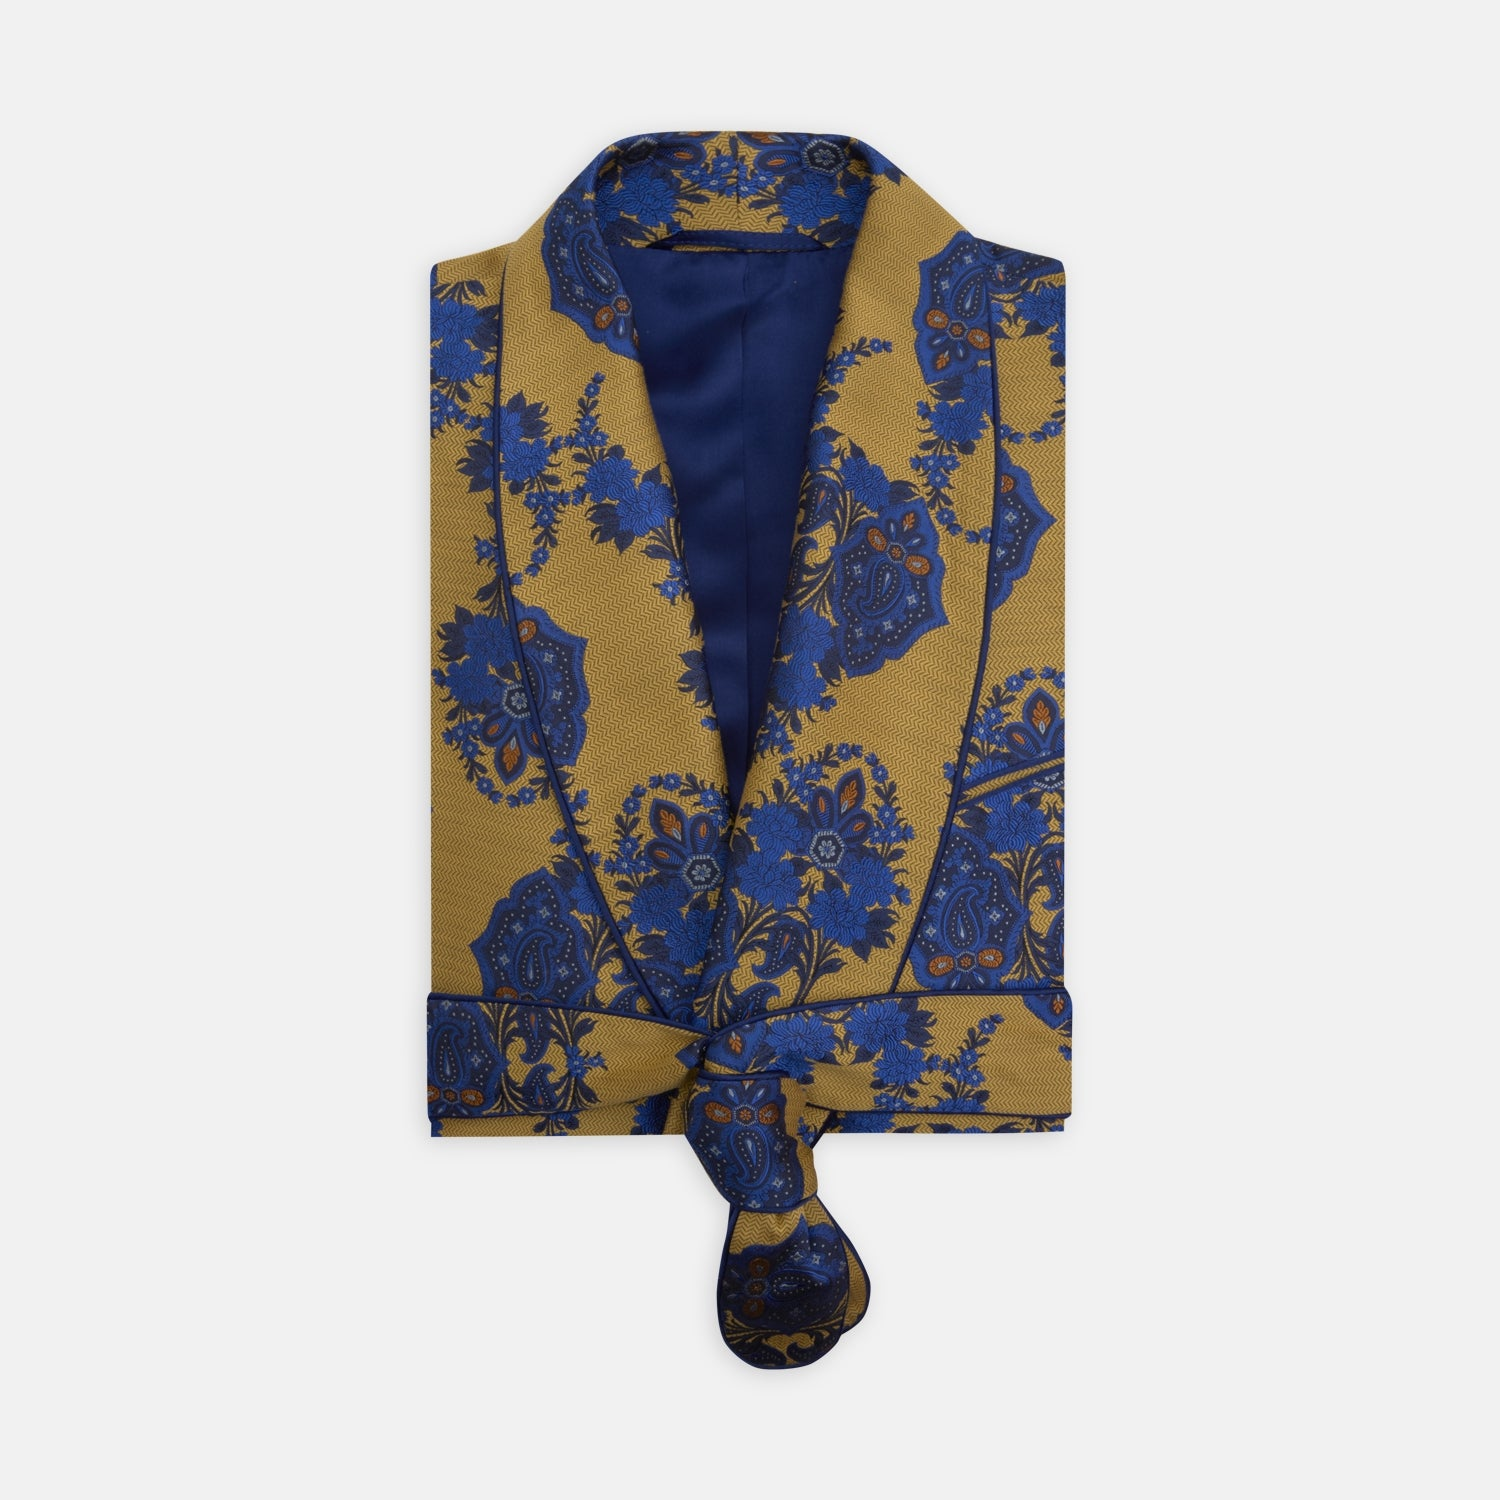 Yellow and Blue Floral Herringbone Silk Gown - M from Turnbull & Asser